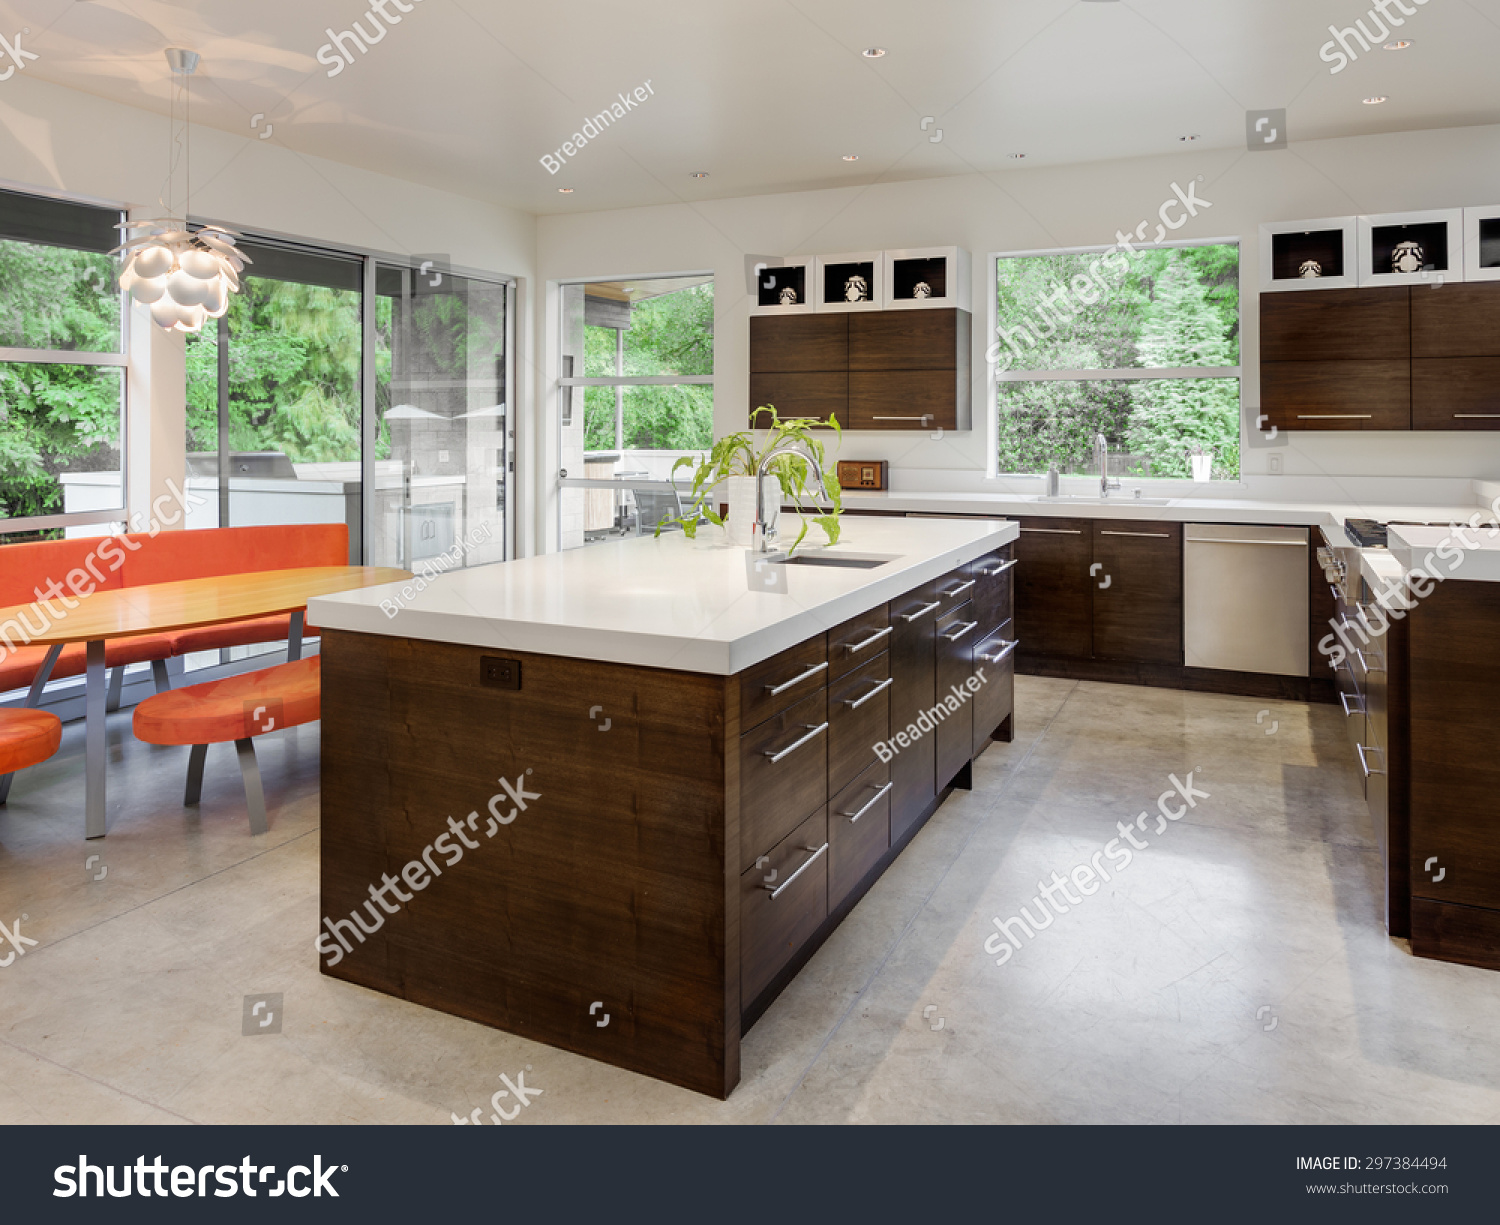 Kitchen New Luxury Home Island Sink Stock Photo 297384494  Shutterstock